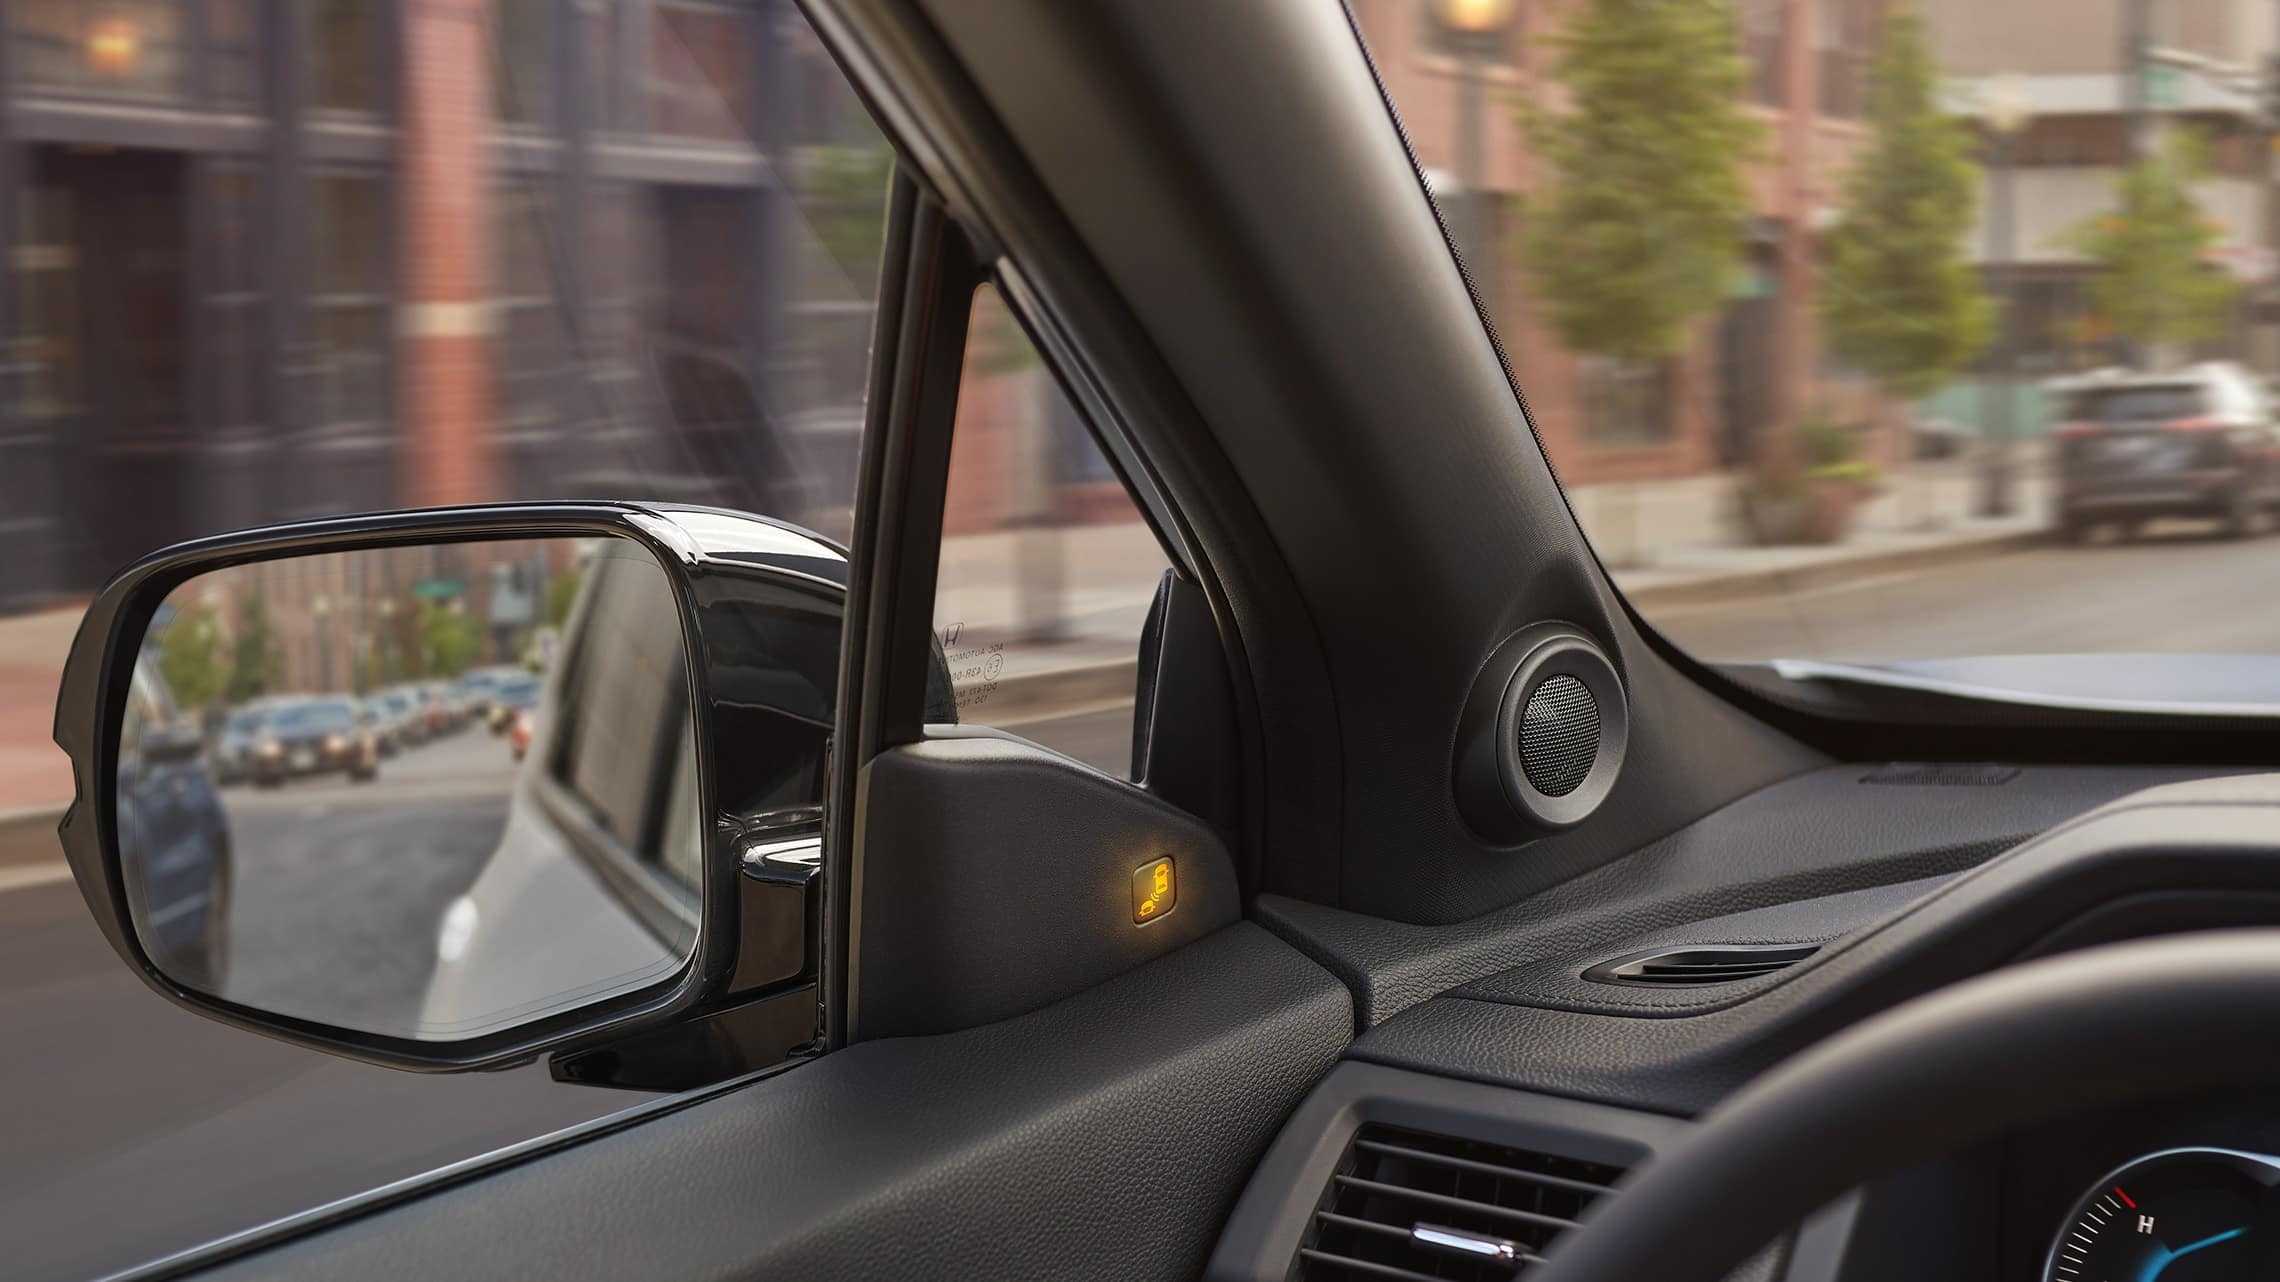 2019 Honda Passport Elite in Lunar Silver Metallic demonstrating the blind spot information system.